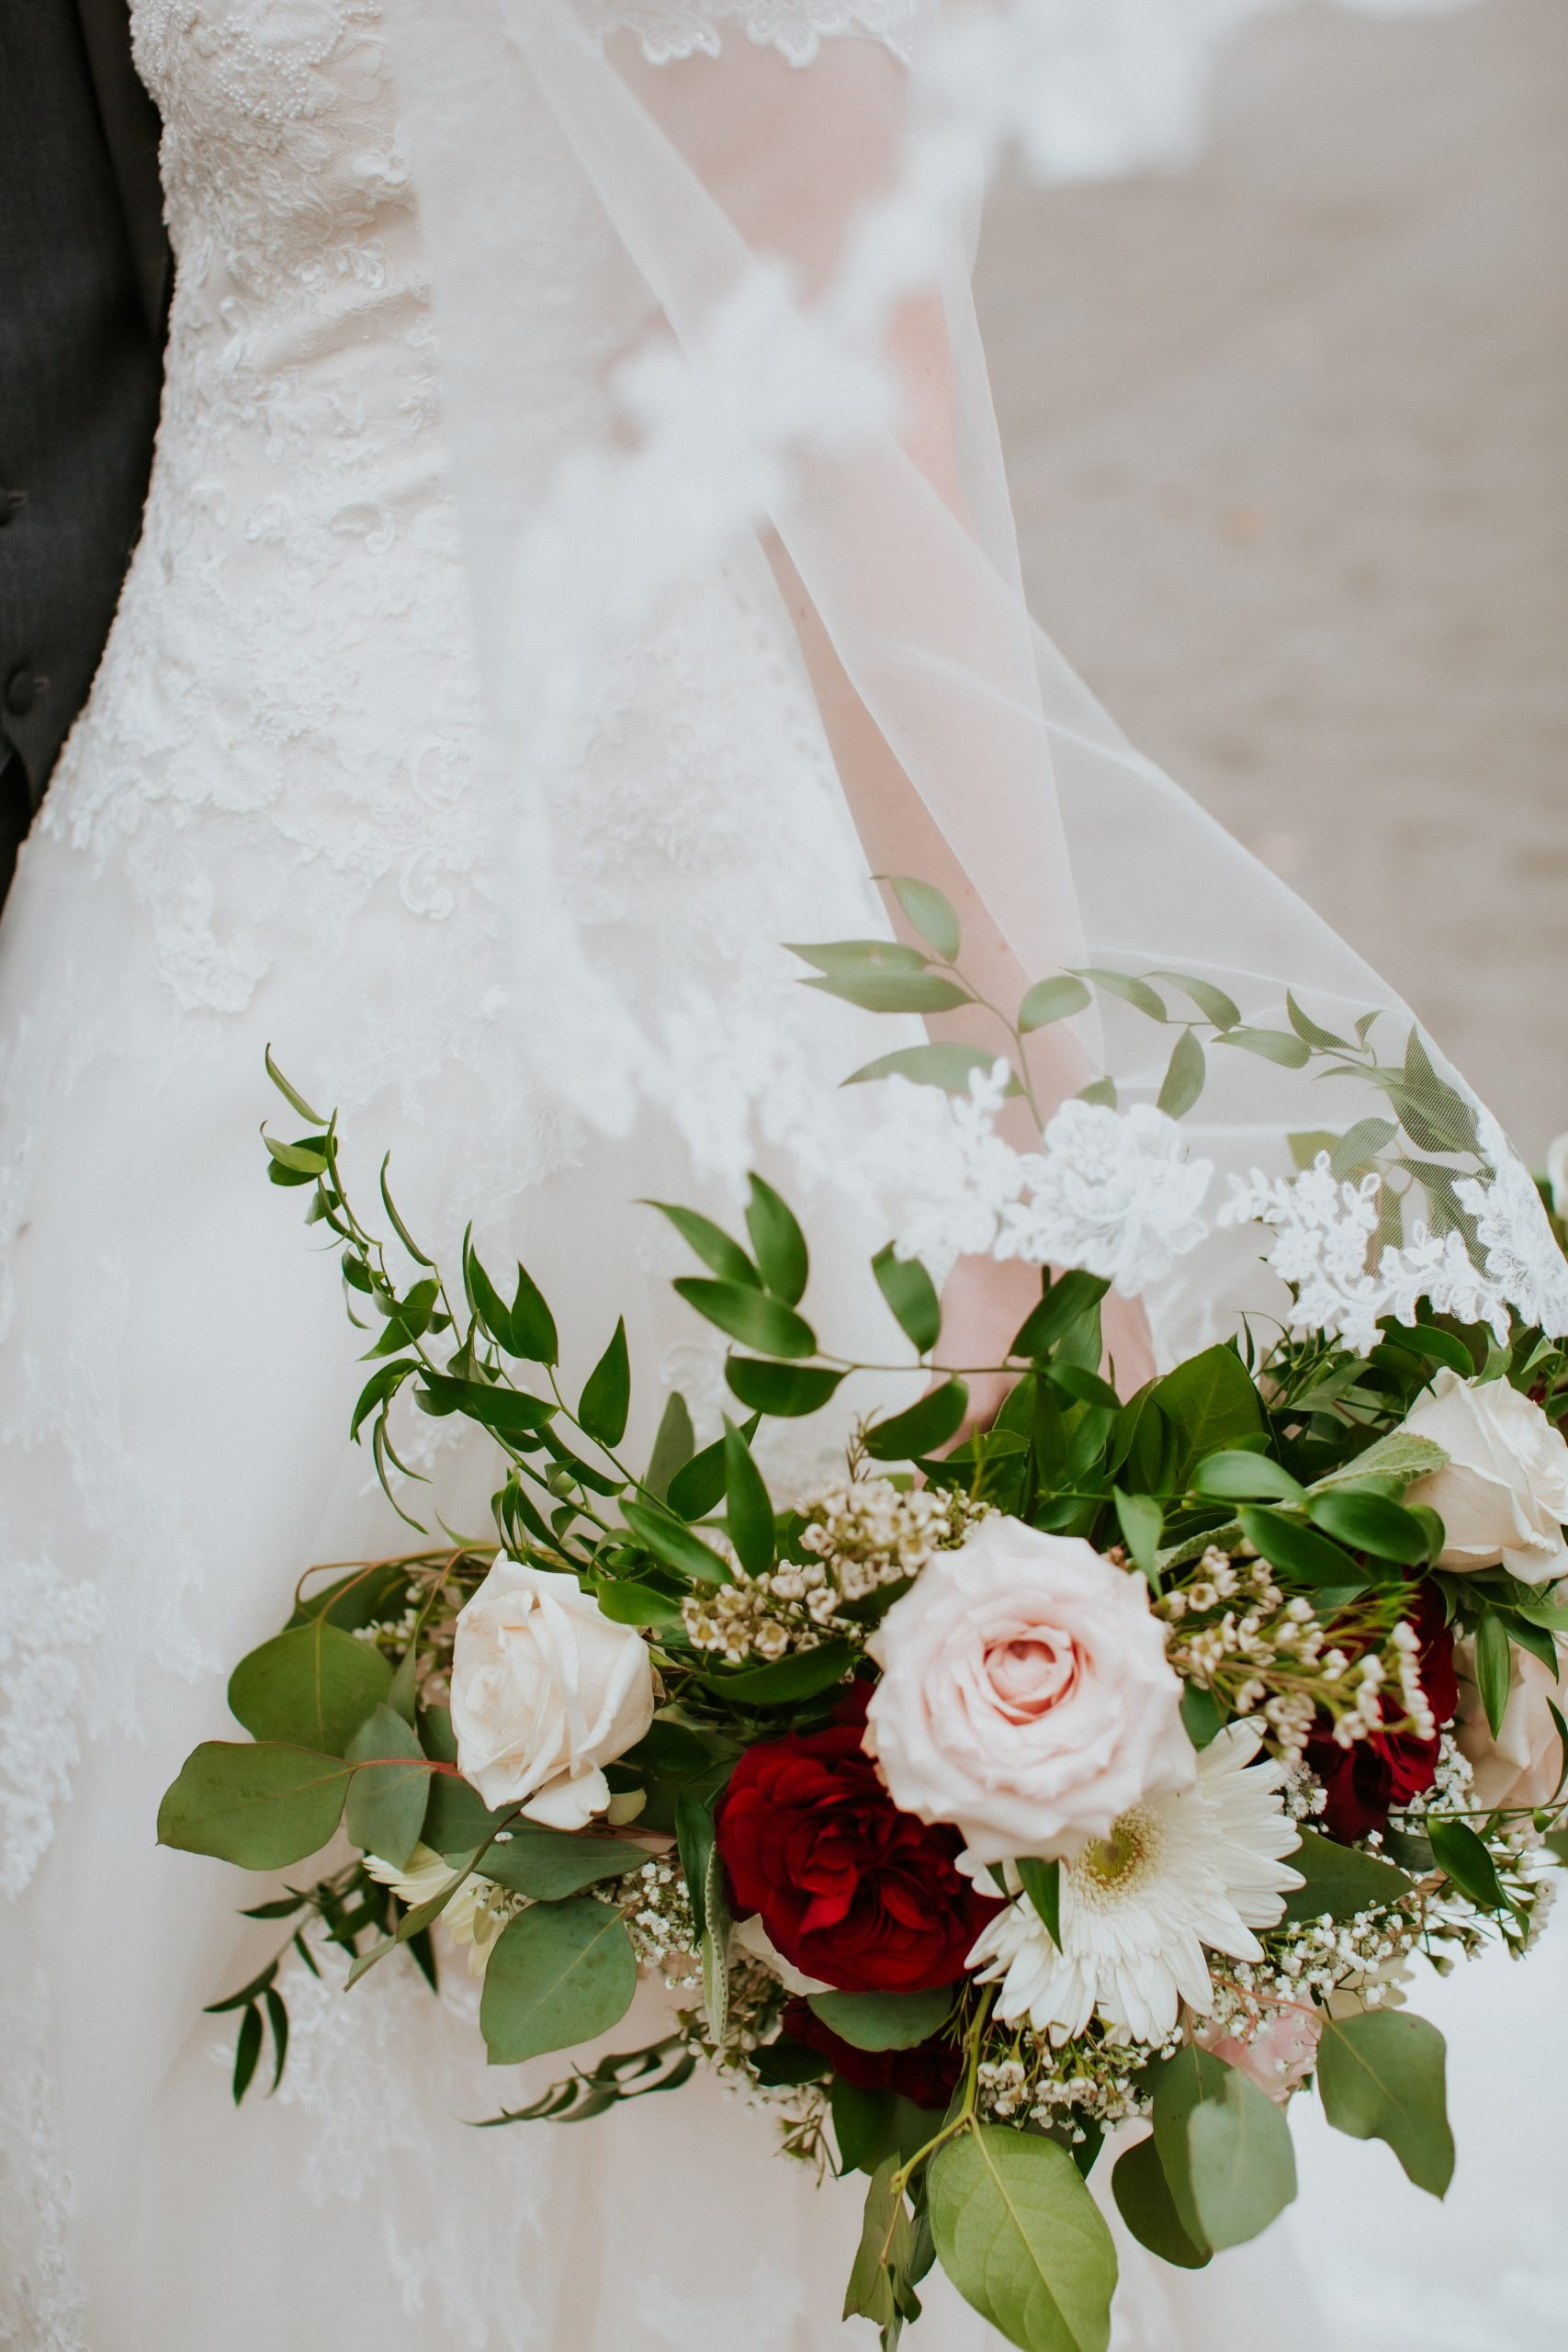 brides wedding bouquet with greenery and red